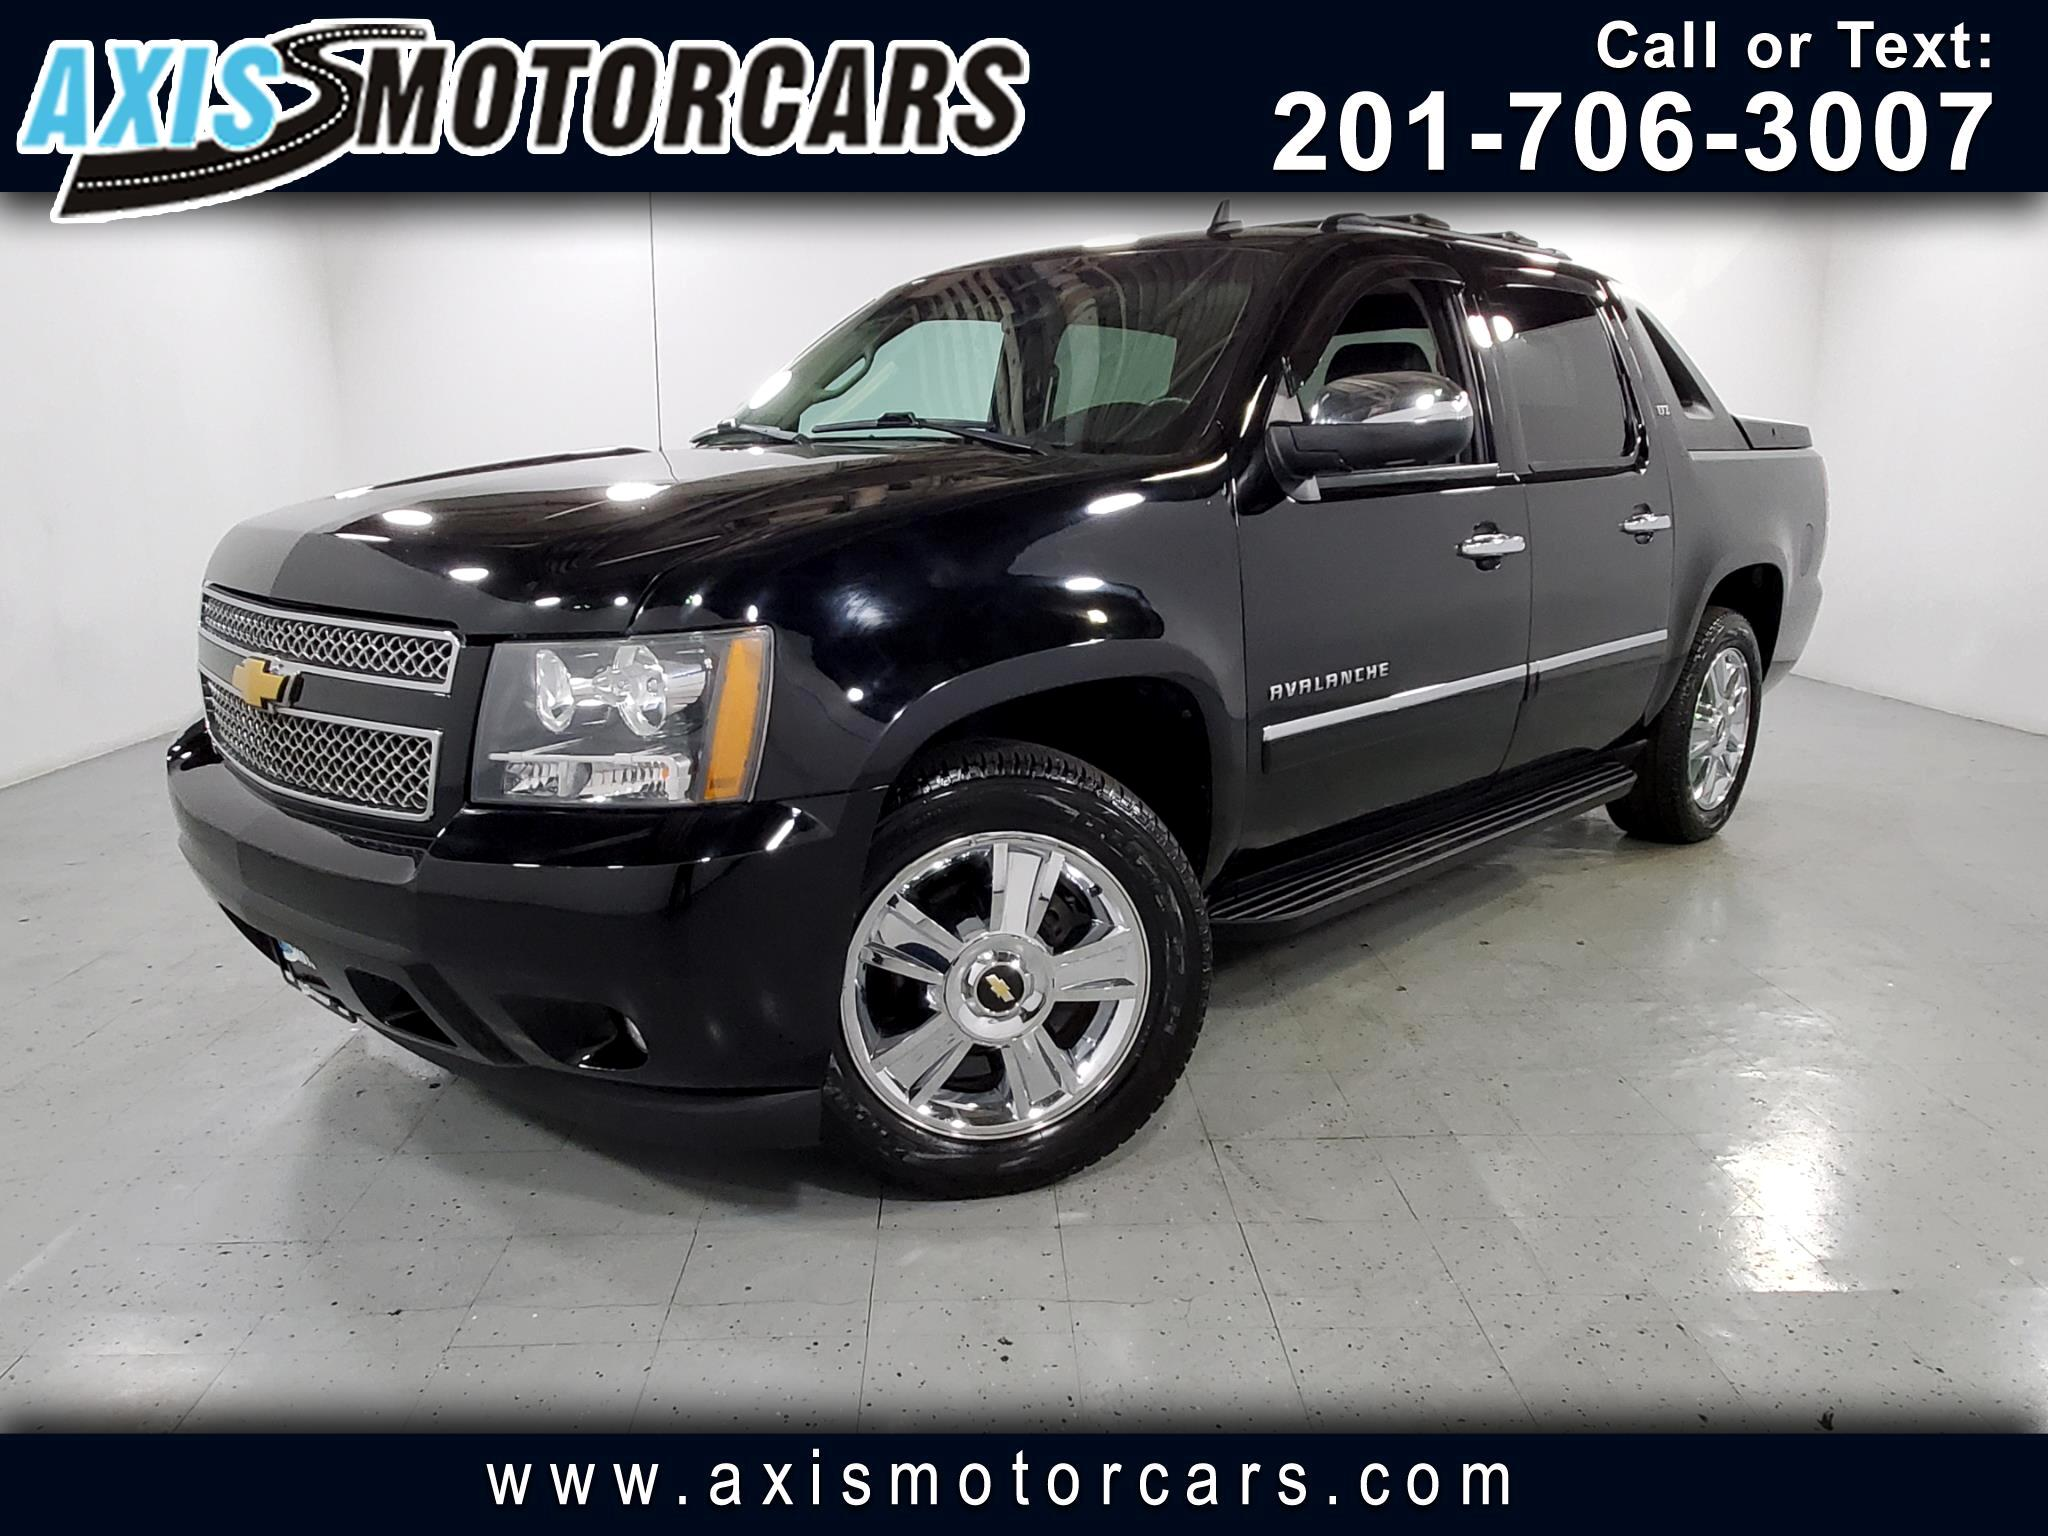 2010 Chevrolet Avalanche Crew Cab LTZ w/Sunroof Leather Rear Entertainment